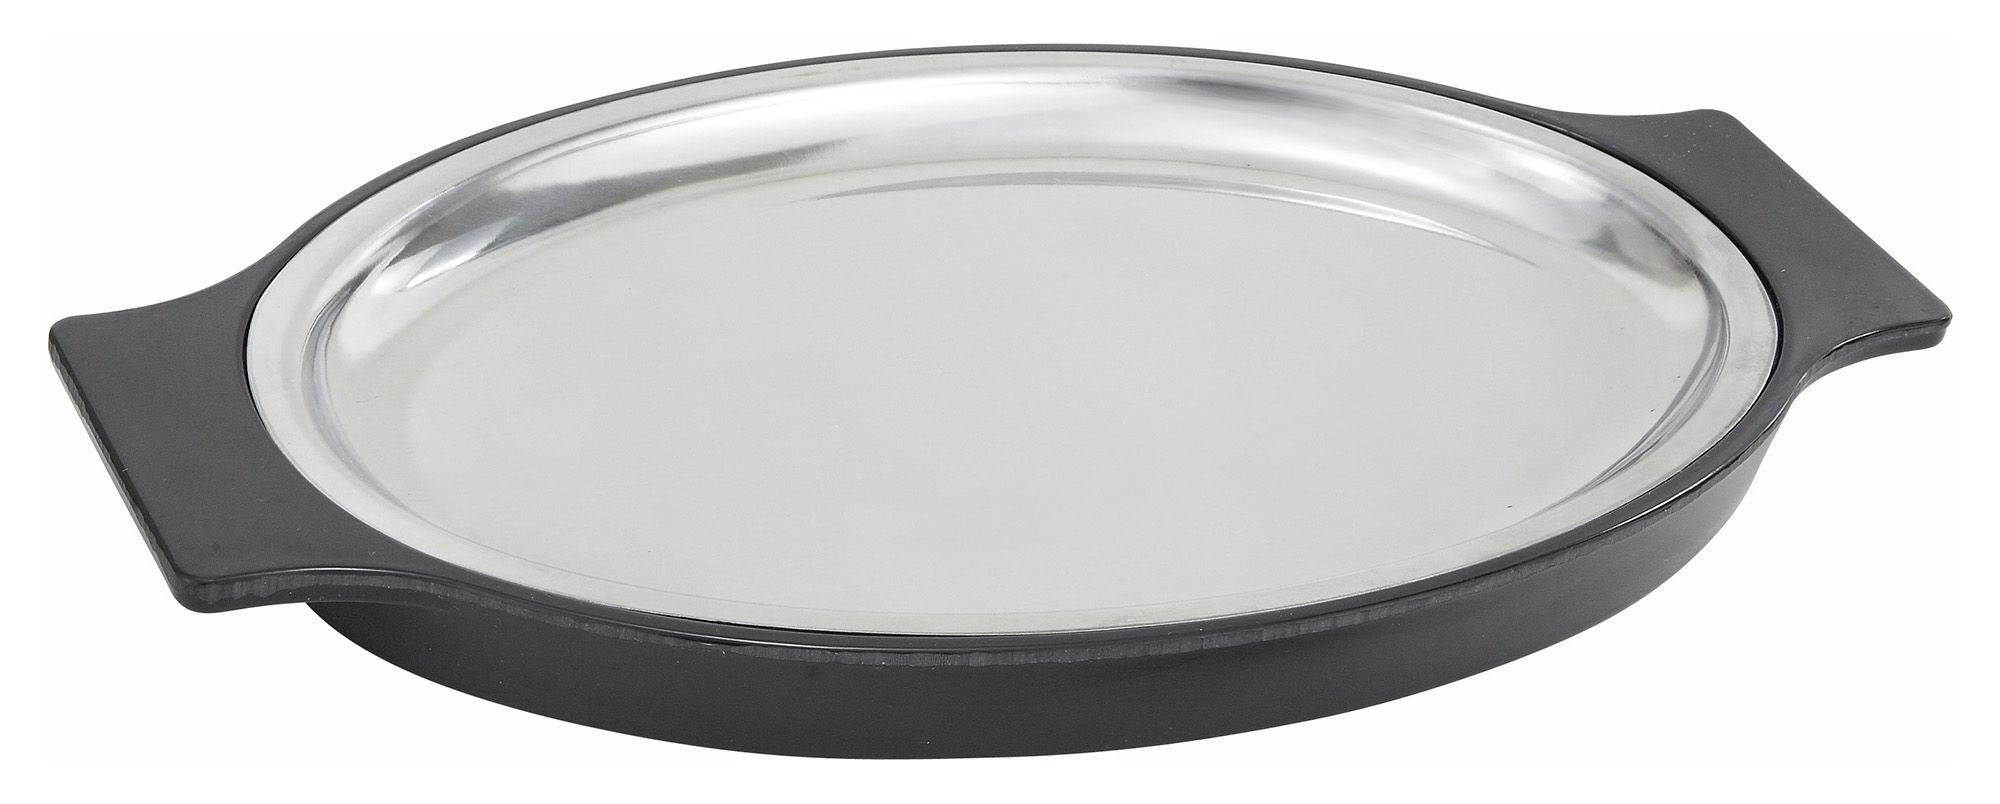 "Winco SIZ-11ST Oval Stainless Steel Sizzling Platter with Bakelite Underliner 11"" x 8"""